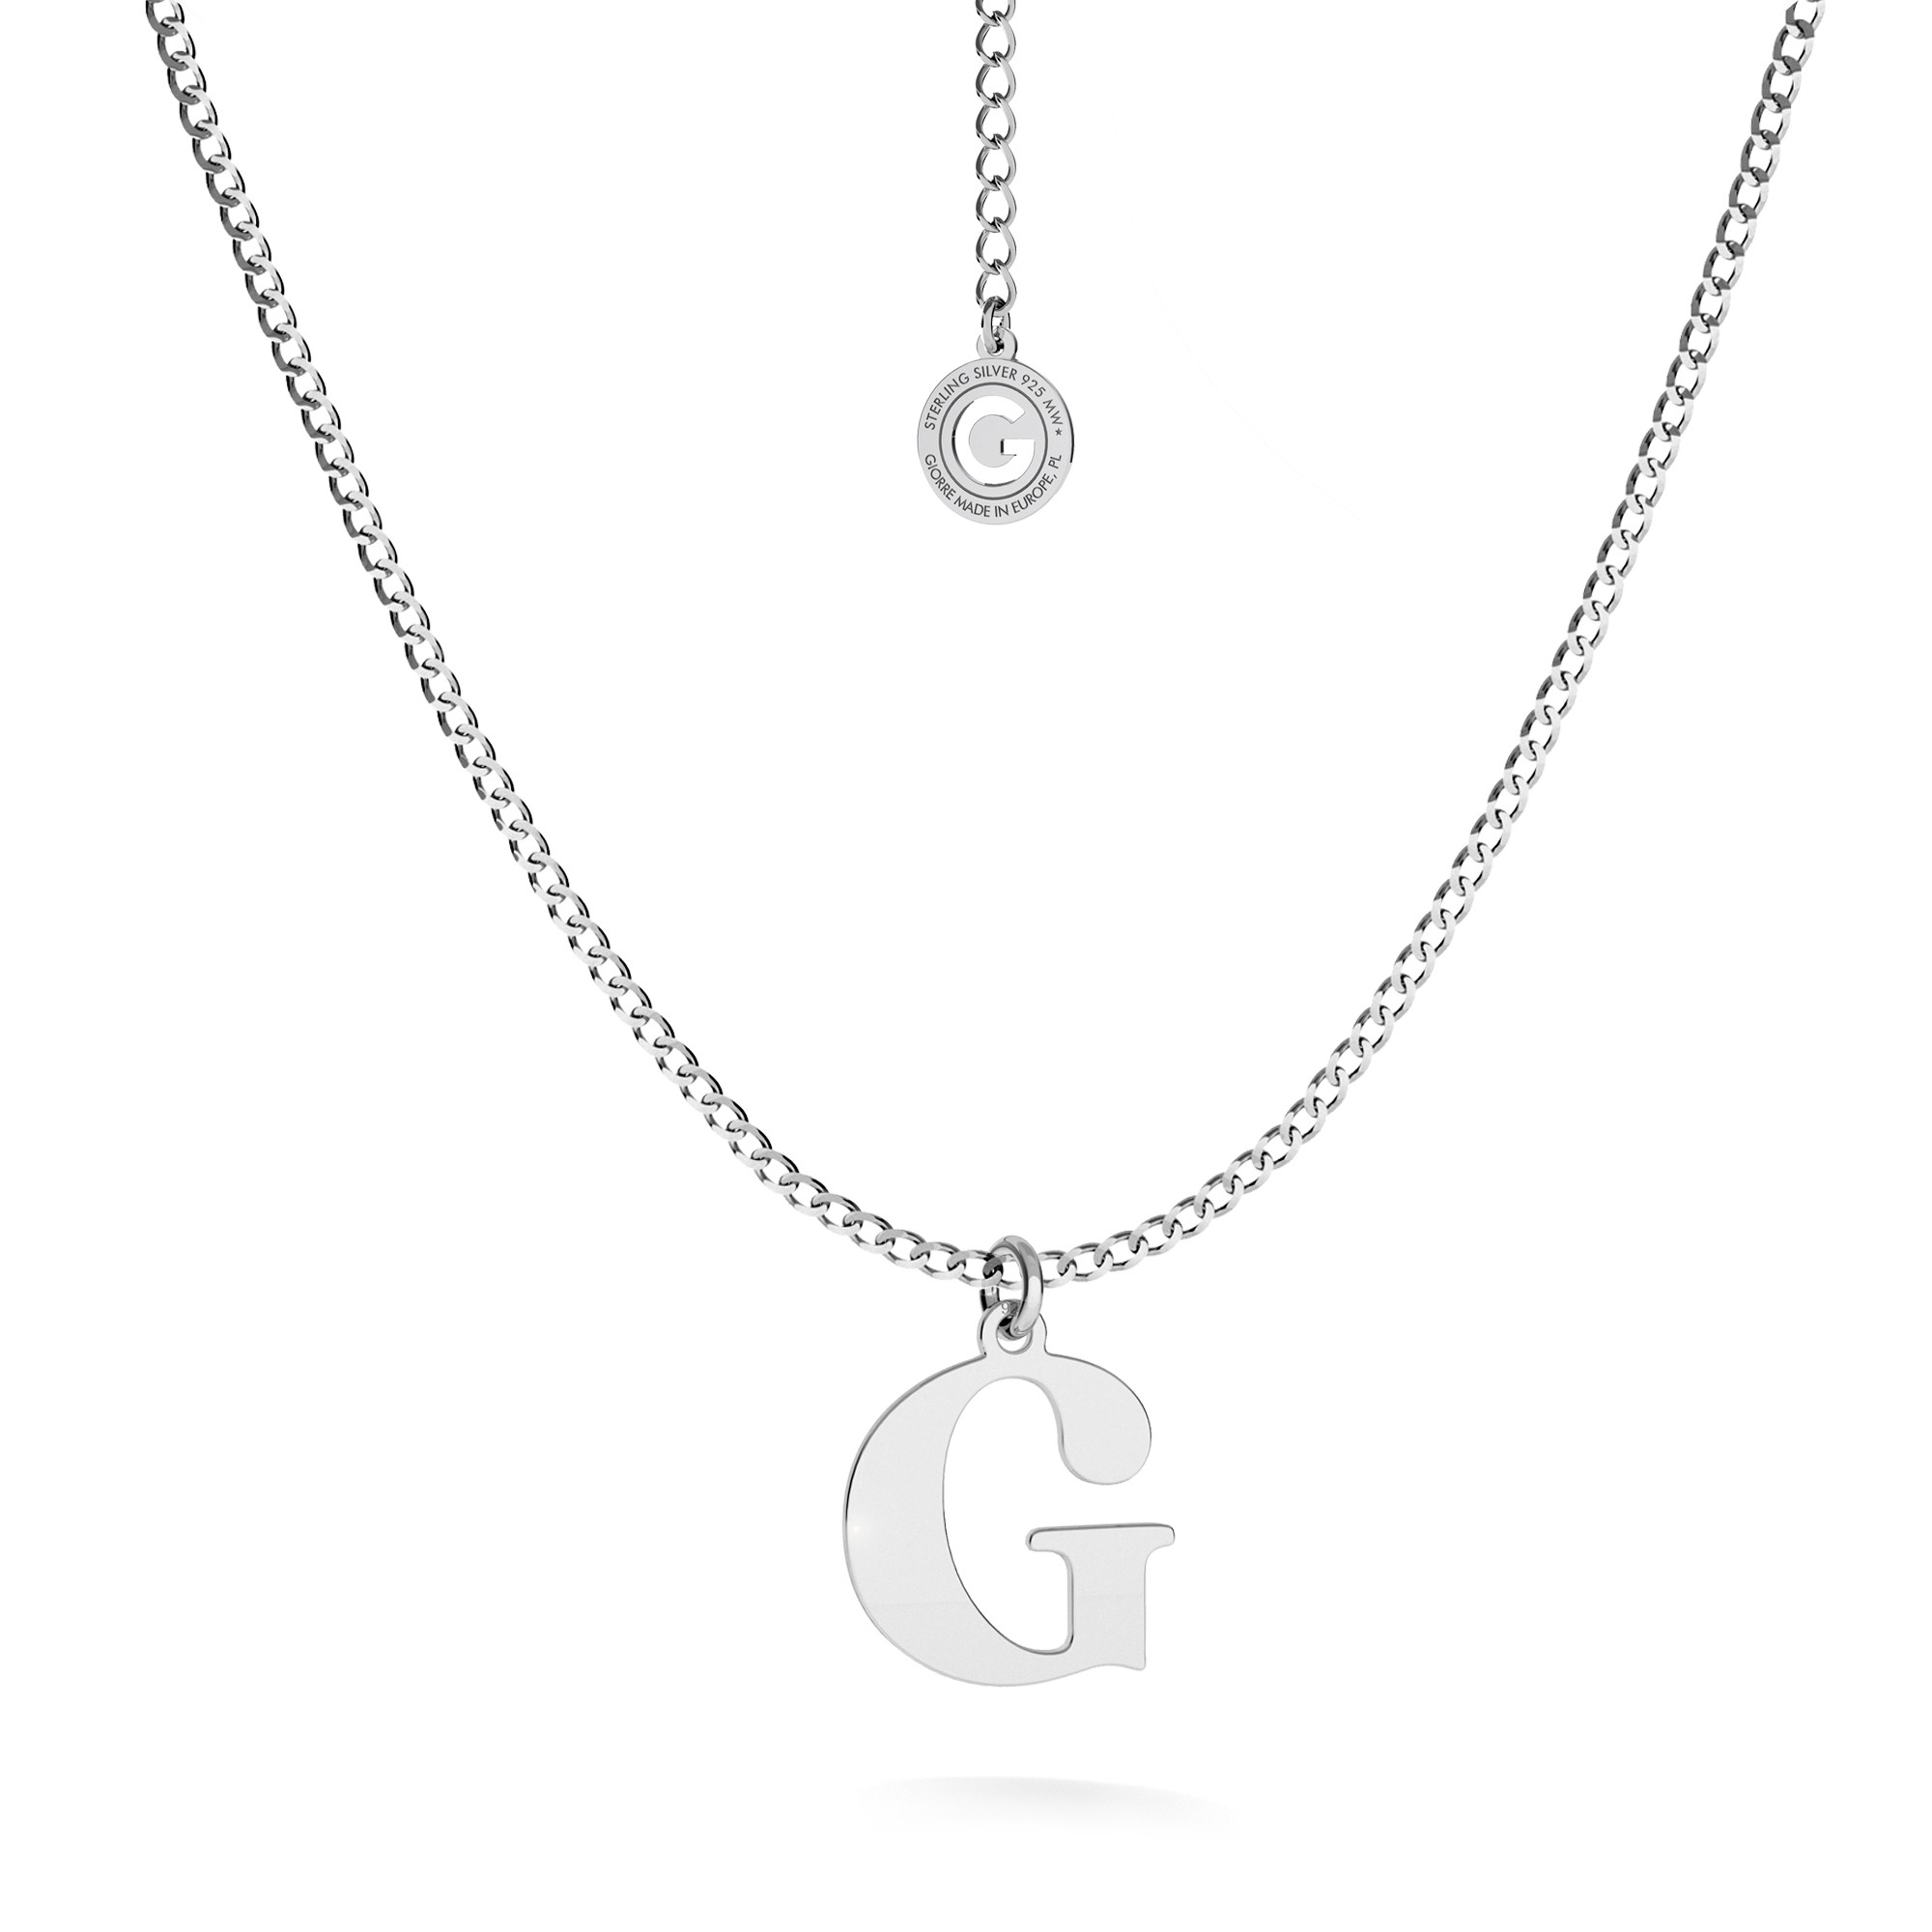 Necklace with big letter A, sterling silver 925